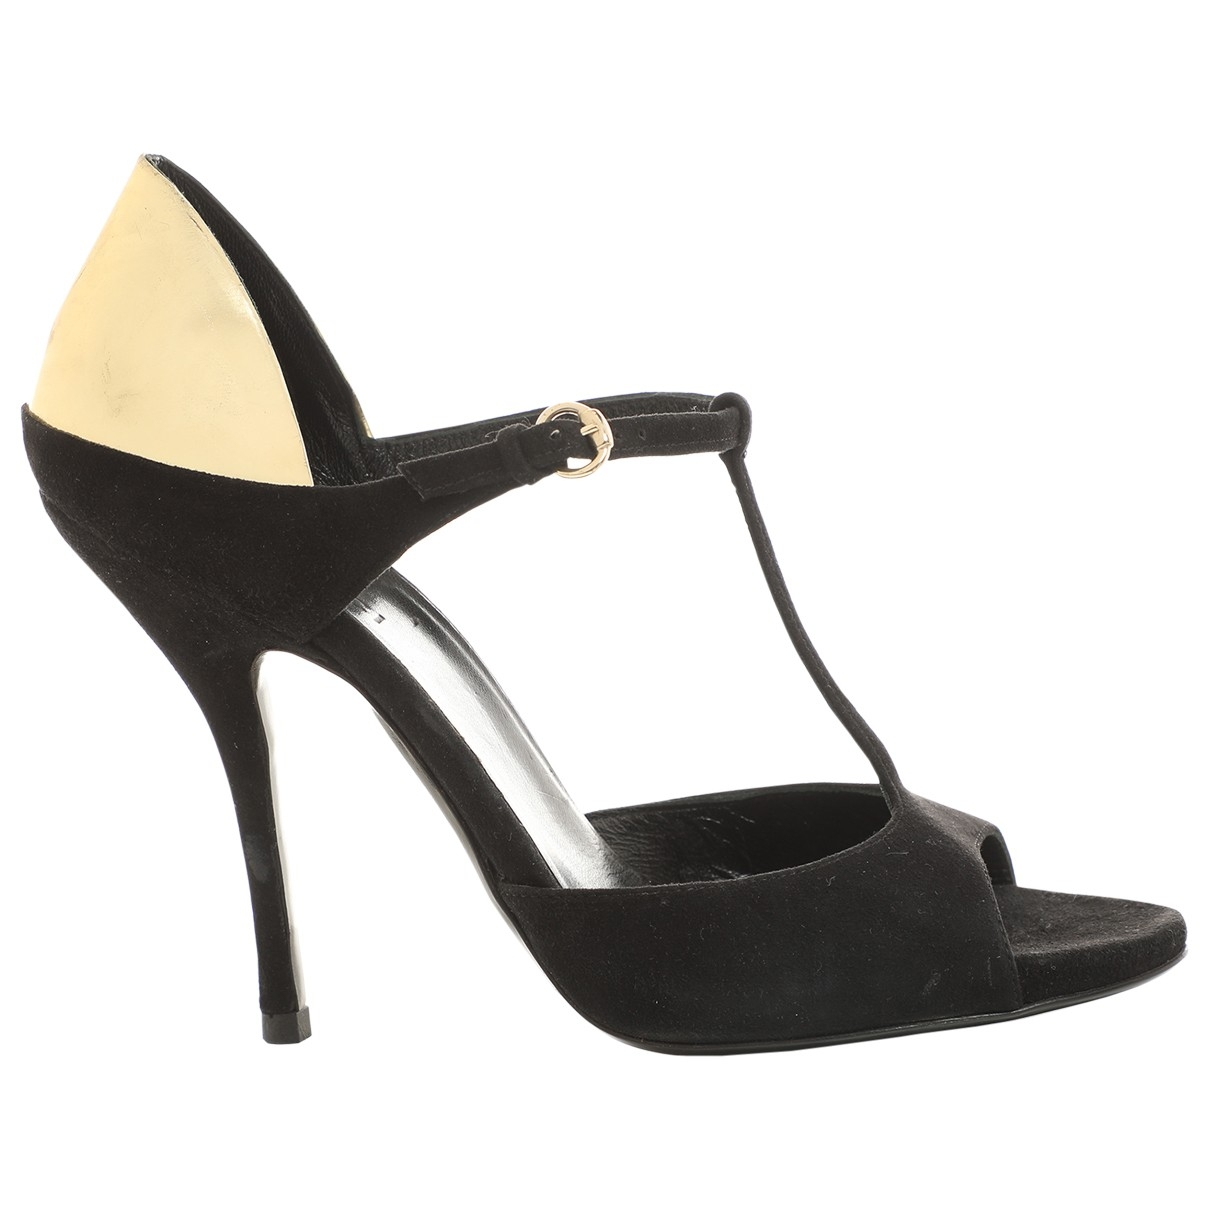 Gucci \N Black Suede Sandals for Women 36 EU